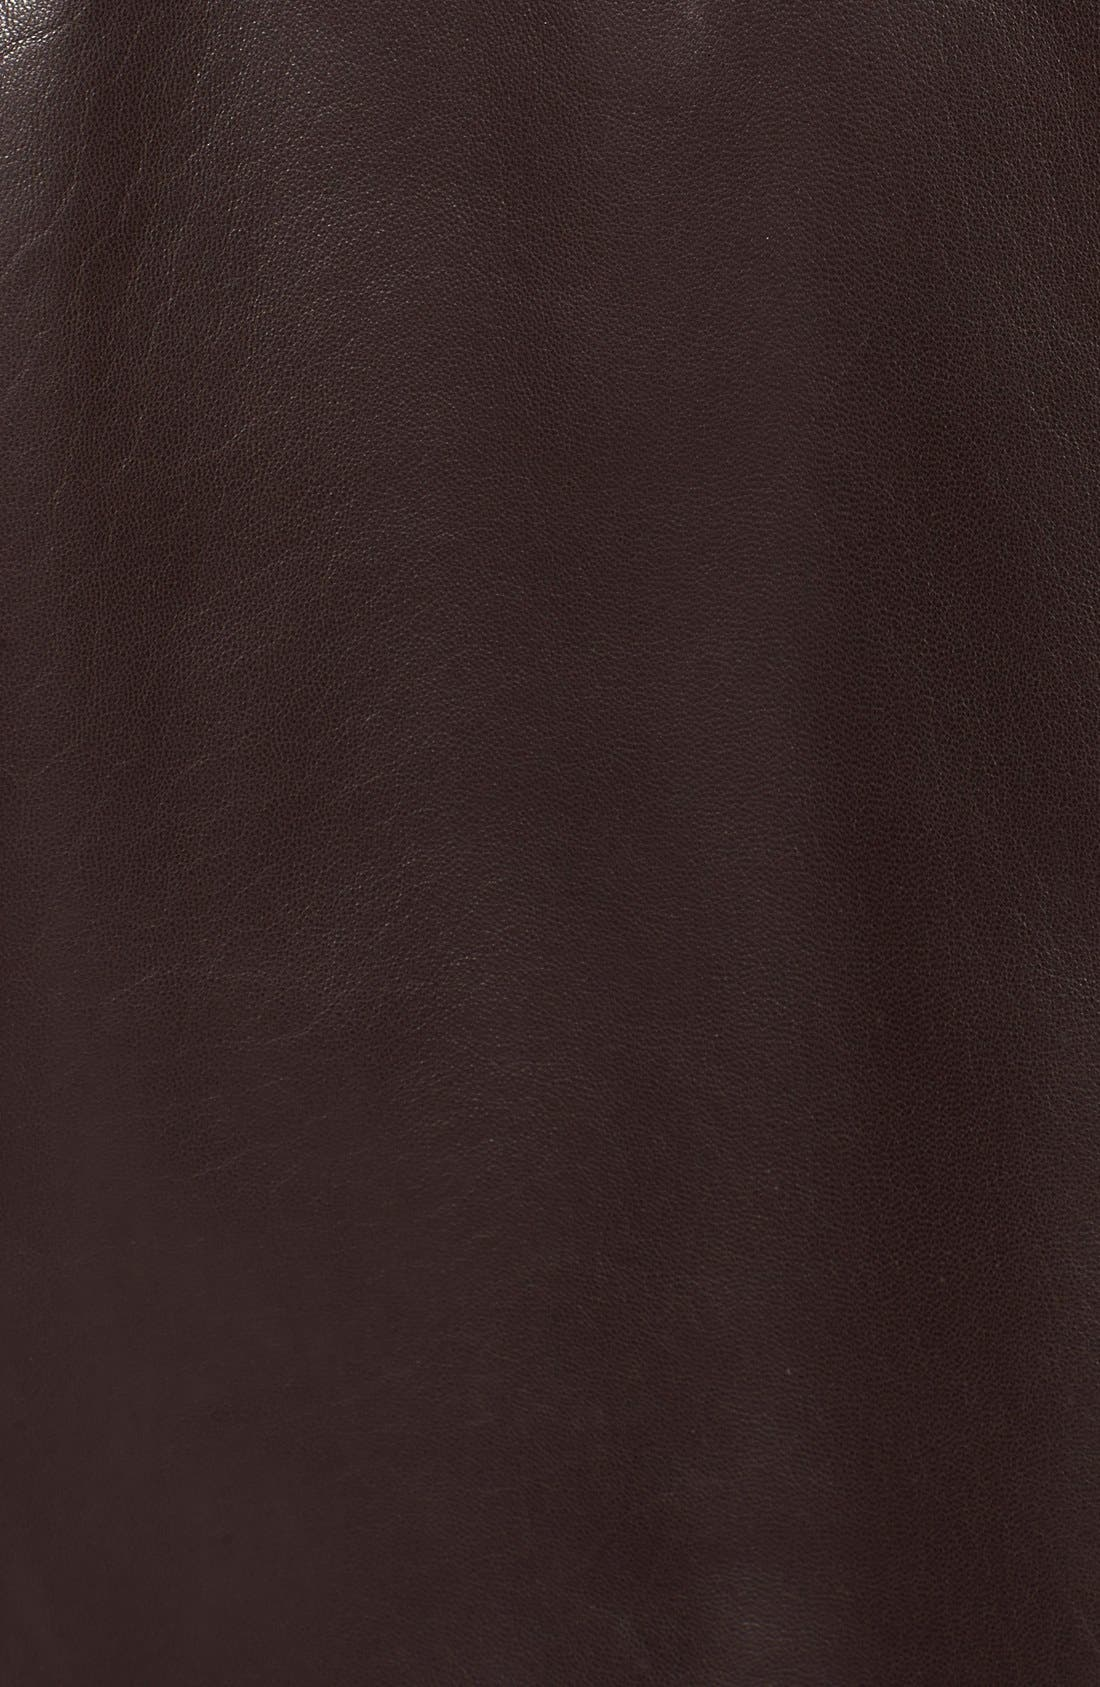 Lambskin Leather Jacket,                             Alternate thumbnail 8, color,                             JAVA